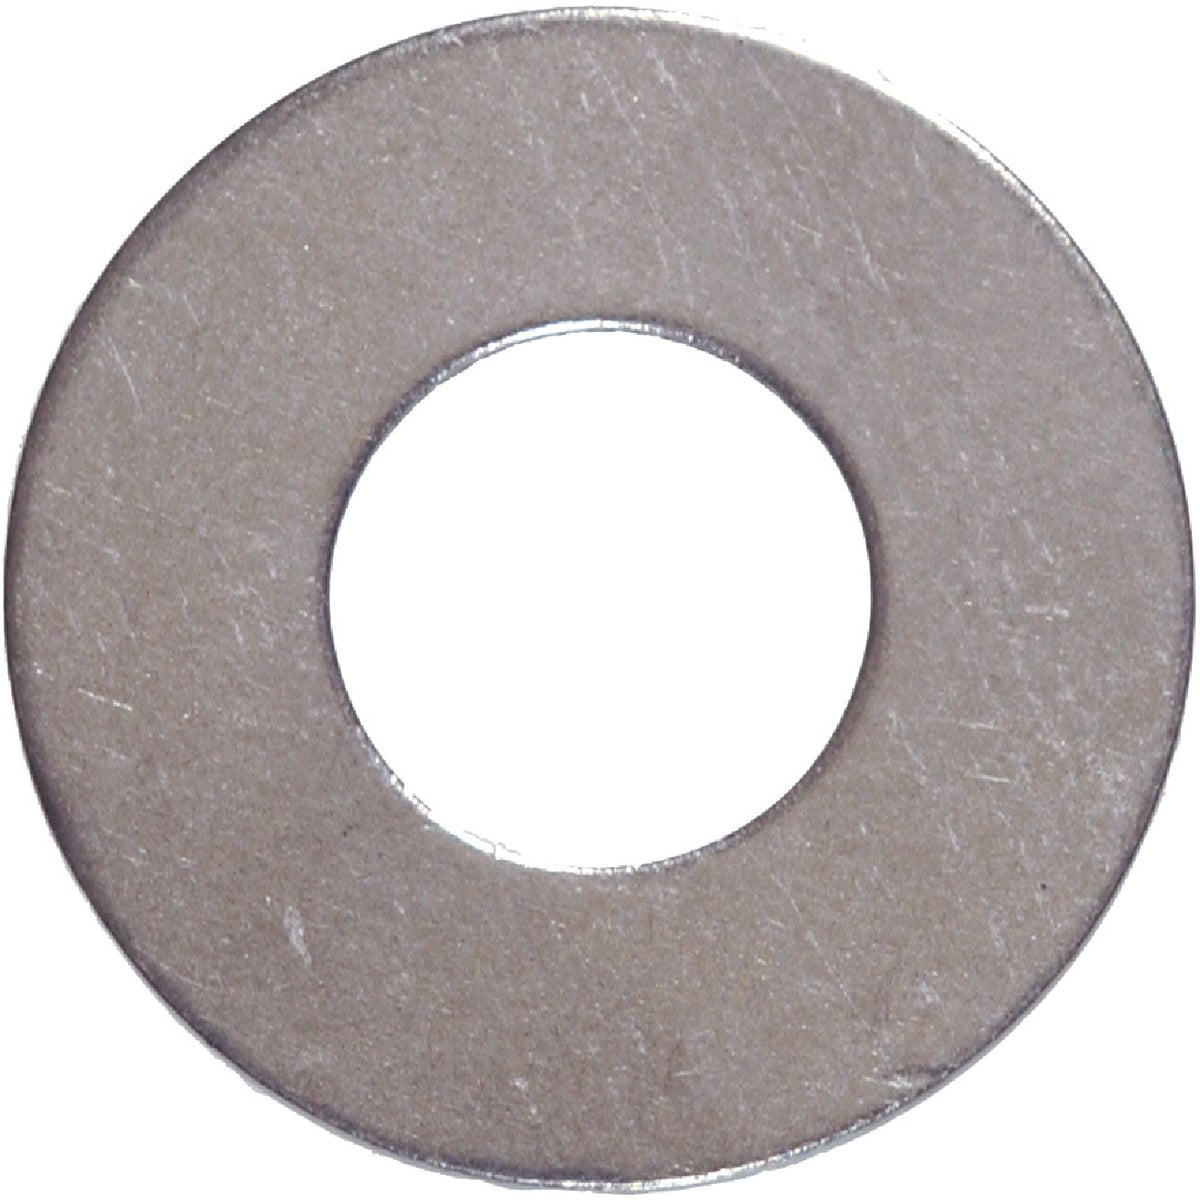 #6 SS FLAT WASHER - 830552 by Hillman Fastener